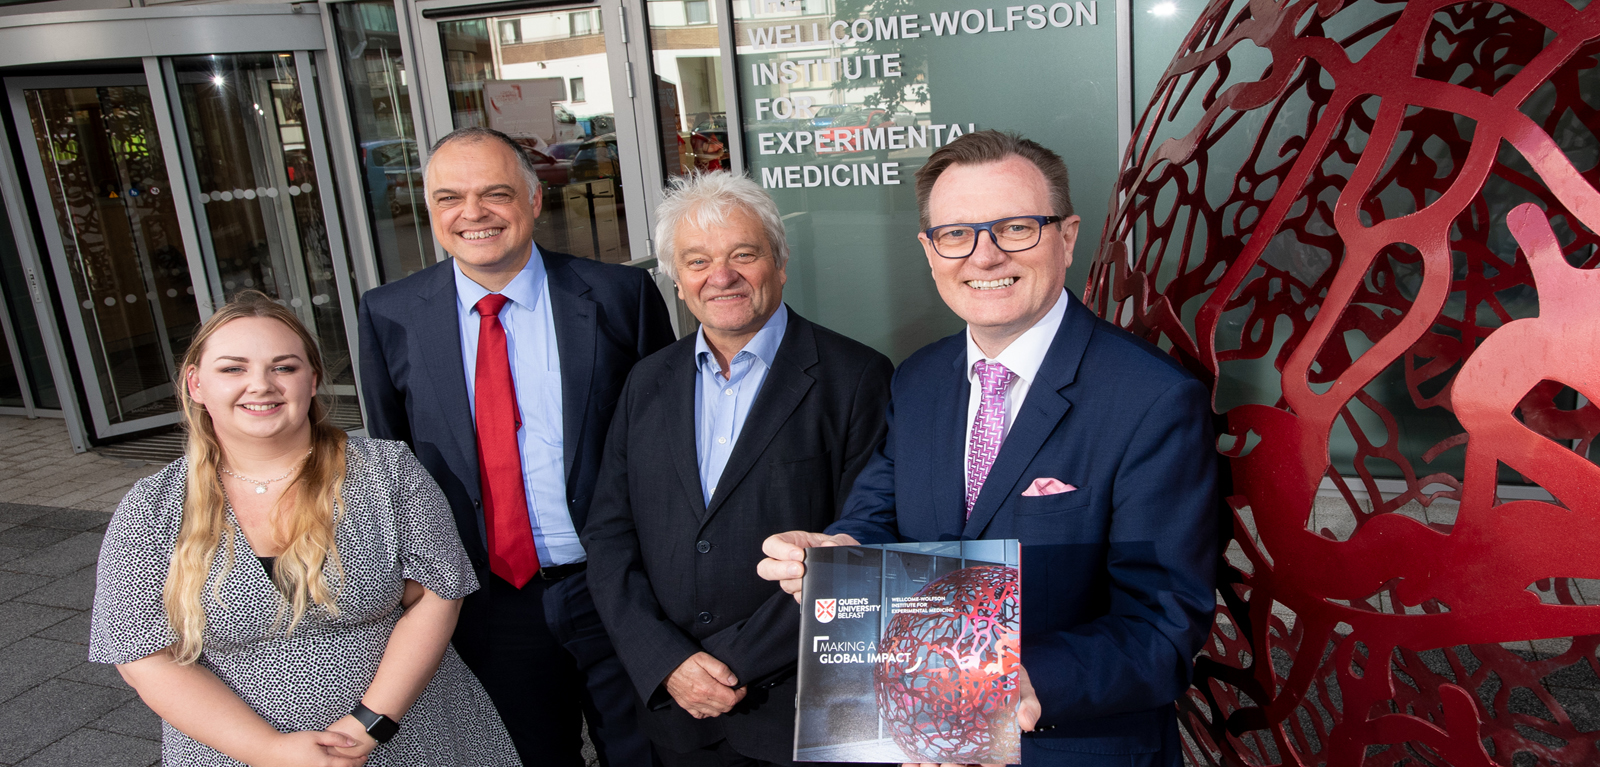 £32m Wellcome-Wolfson Institute for Experimental Medicine opens at Queen's